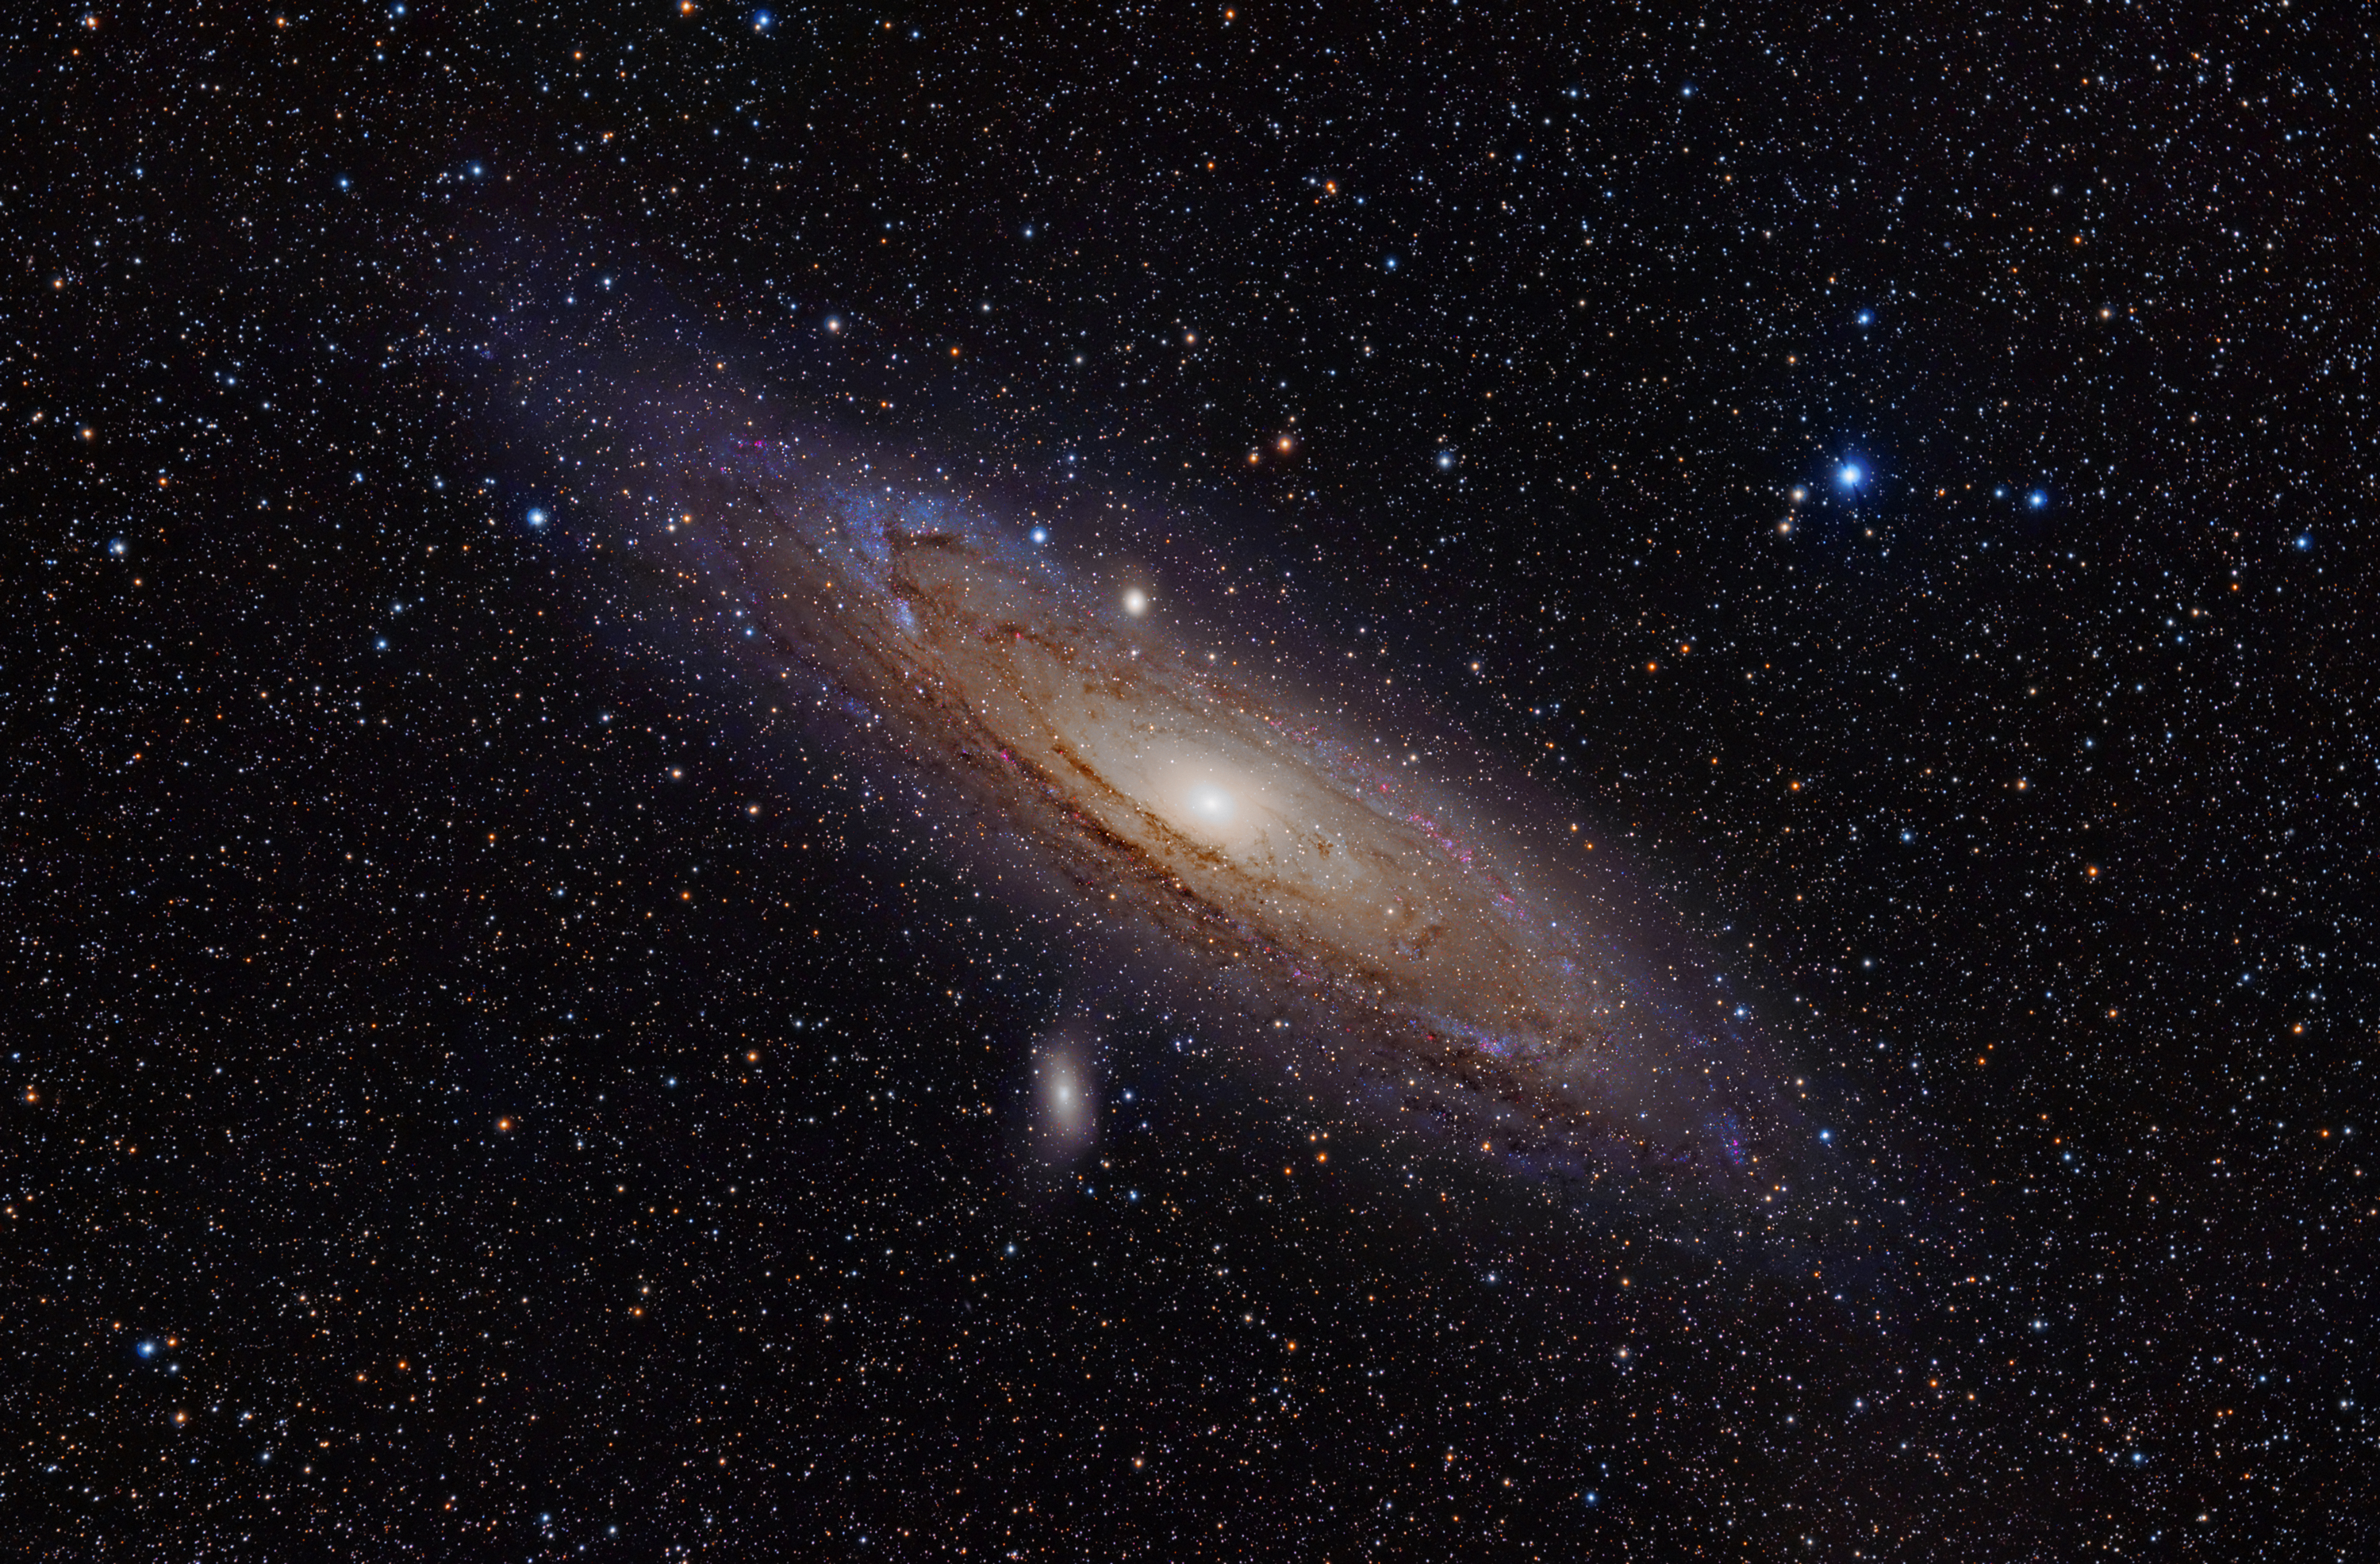 https://upload.wikimedia.org/wikipedia/commons/9/98/Andromeda_Galaxy_%28with_h-alpha%29.jpg